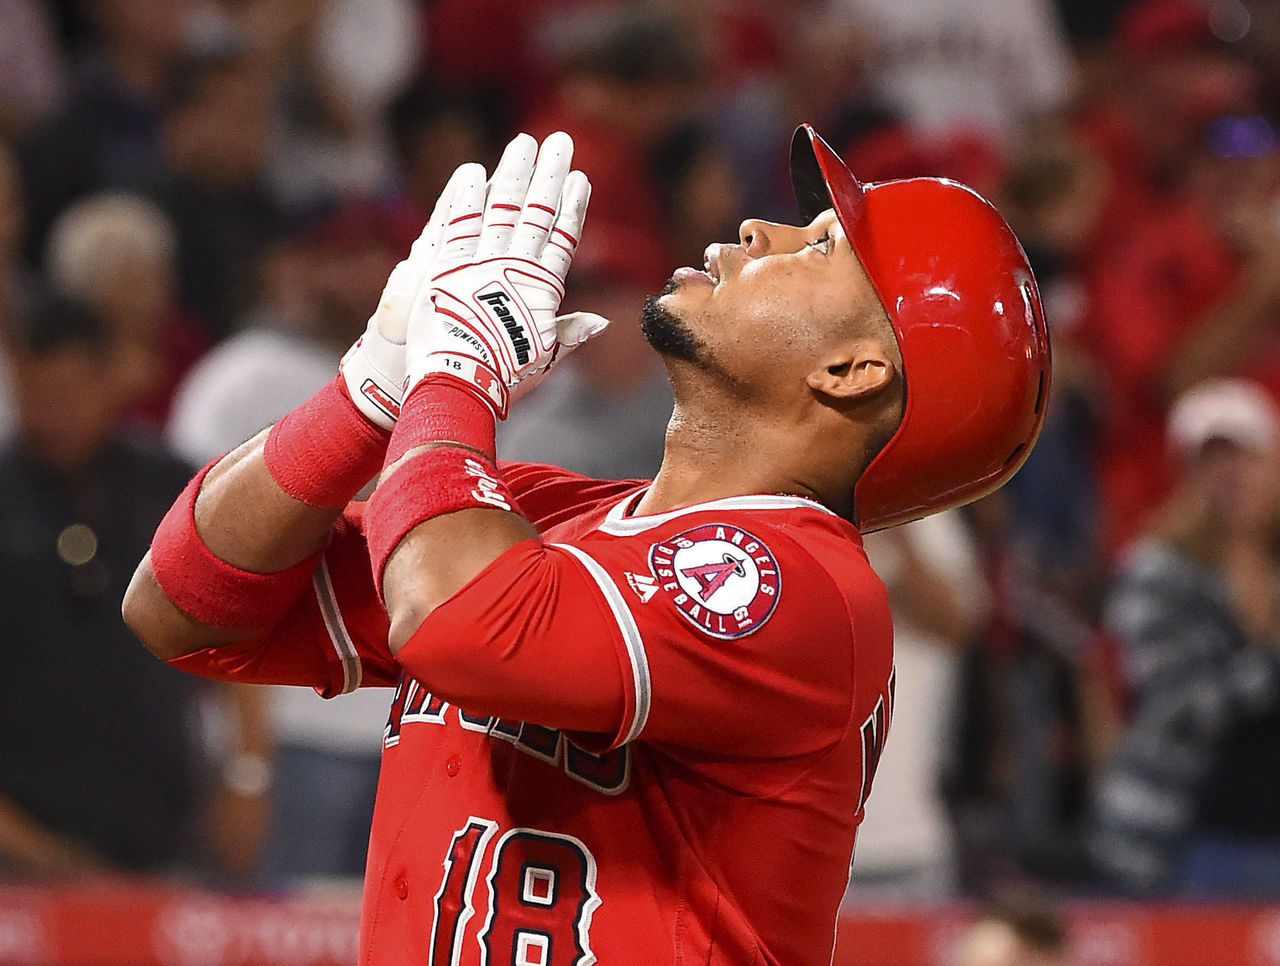 Cropped_2017-09-15t041034z_1982611370_nocid_rtrmadp_3_mlb-houston-astros-at-los-angeles-angels